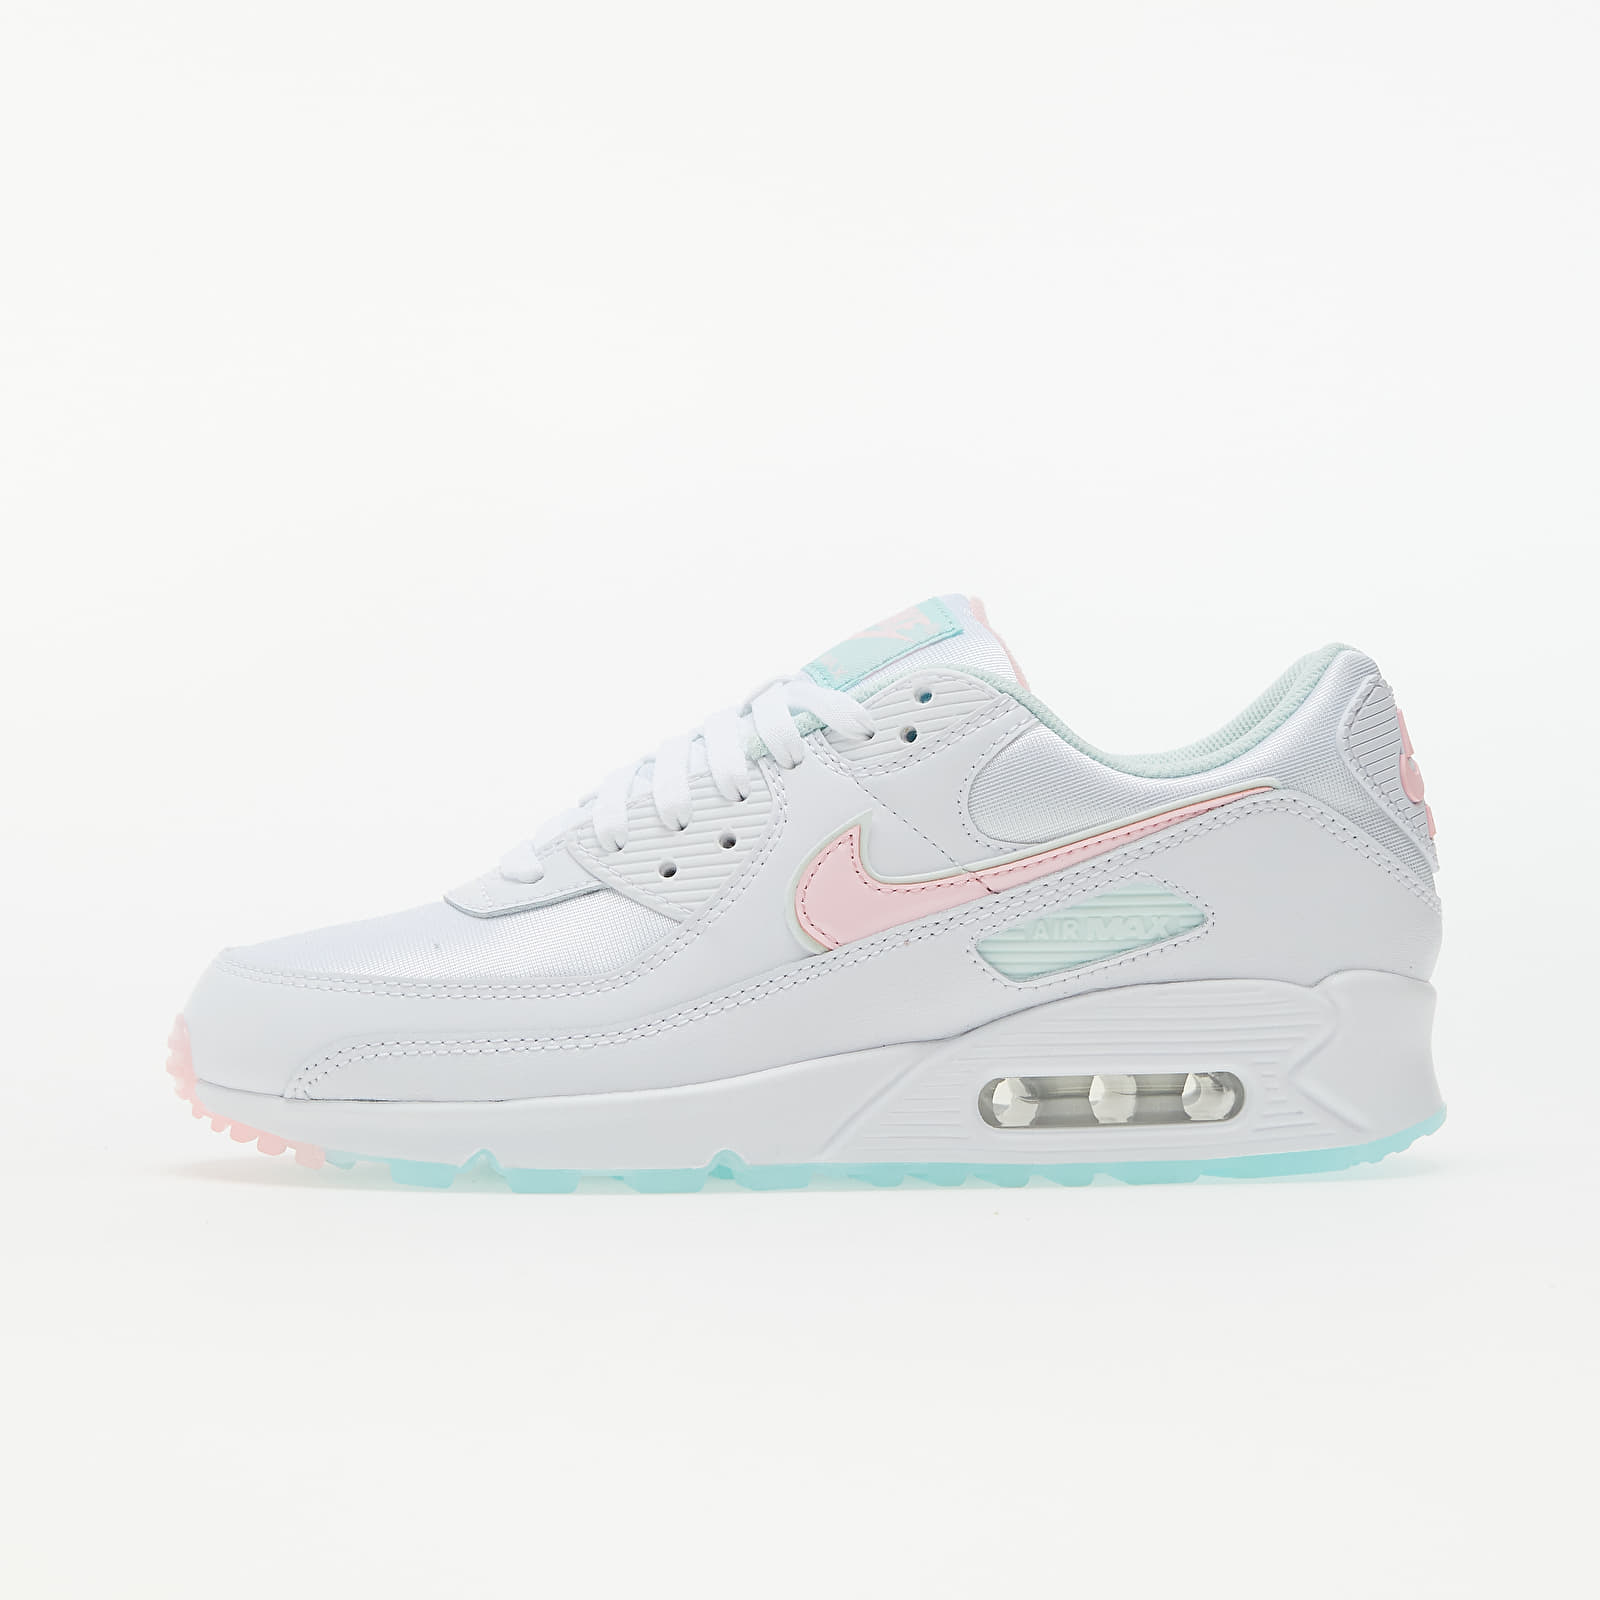 Nike W Air Max 90 White/ Arctic Punch-Barely Green EUR 37.5